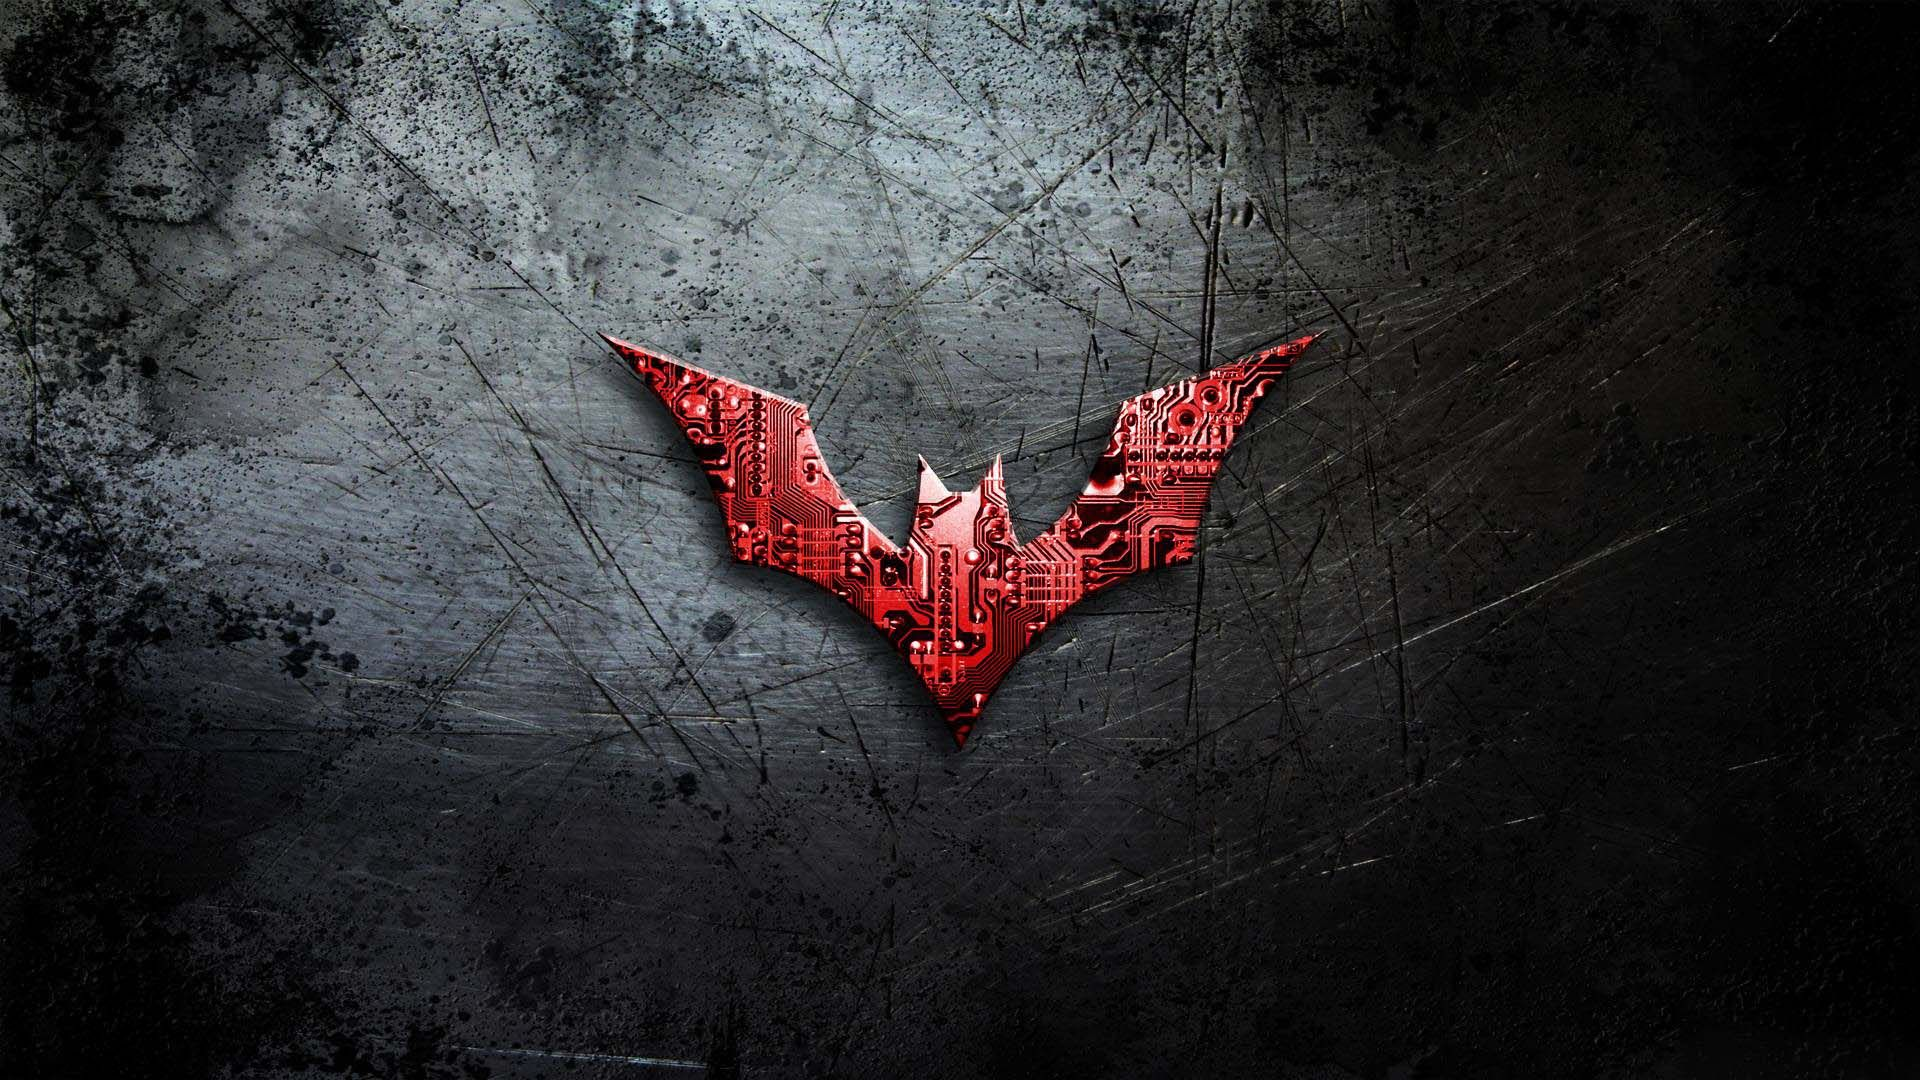 Images Hd 1080p With Images Batman Wallpaper Android